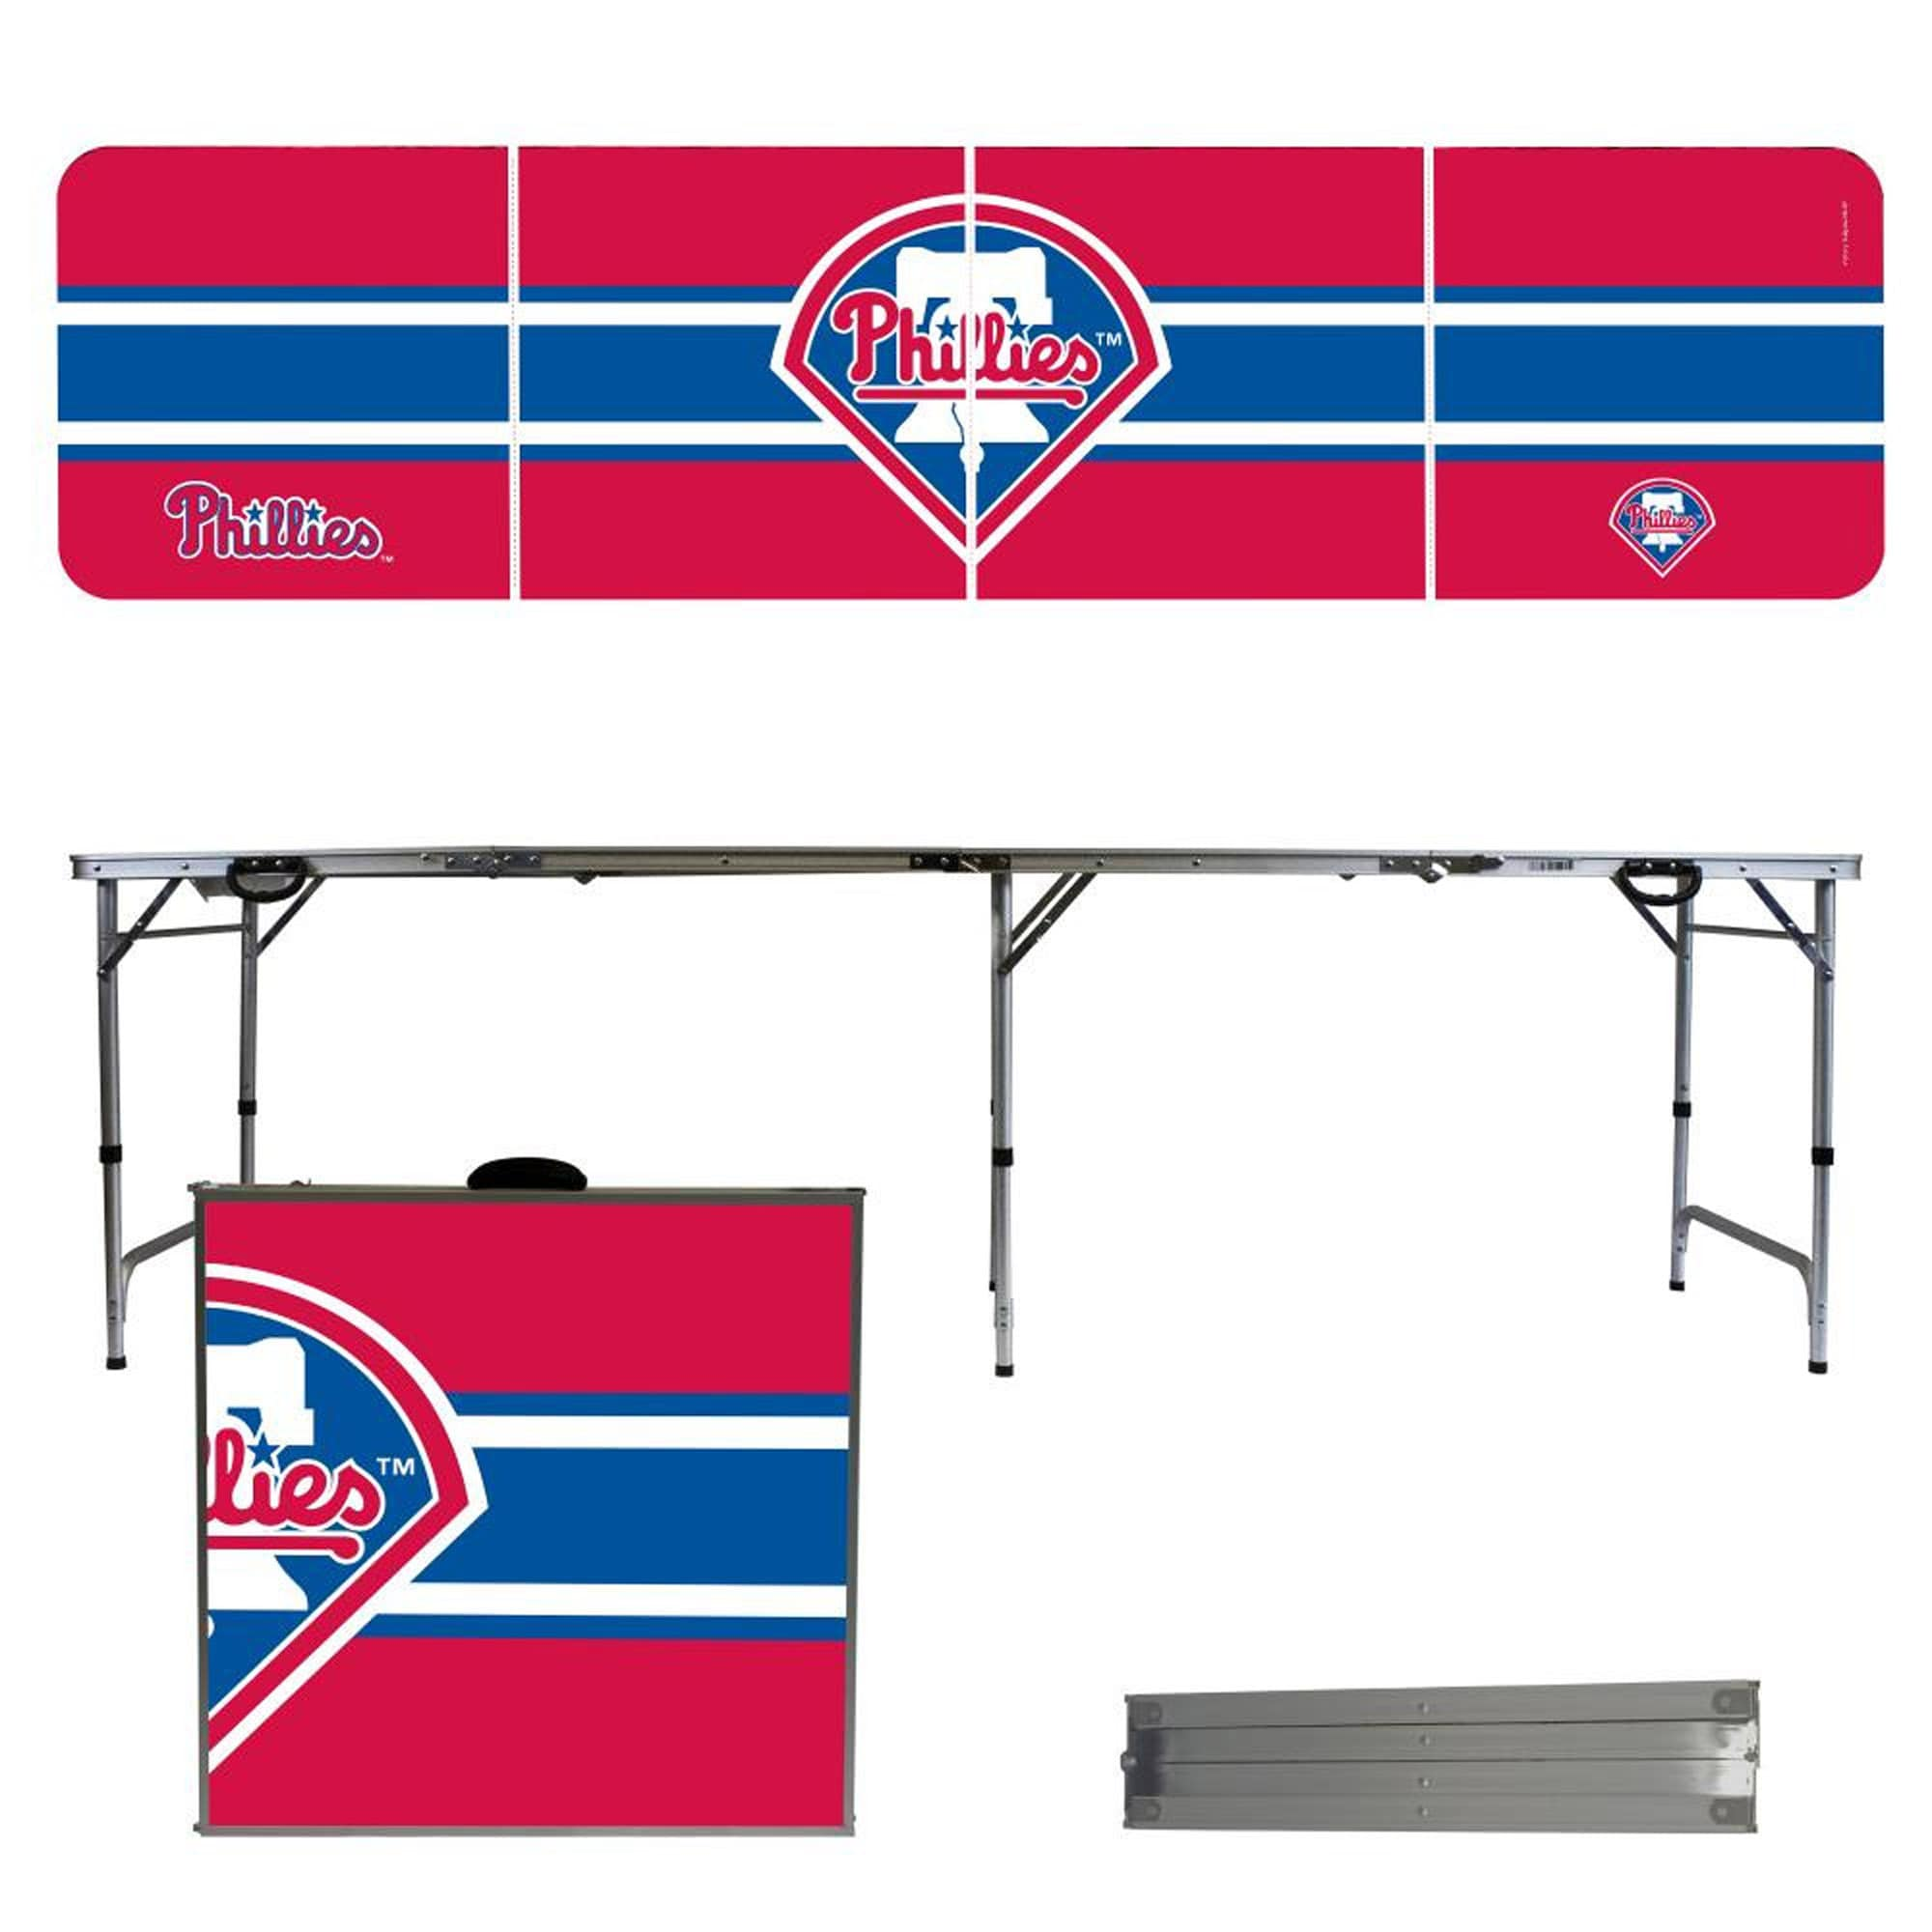 Philadelphia Phillies Striped Design 8' Portable Folding Tailgate Table